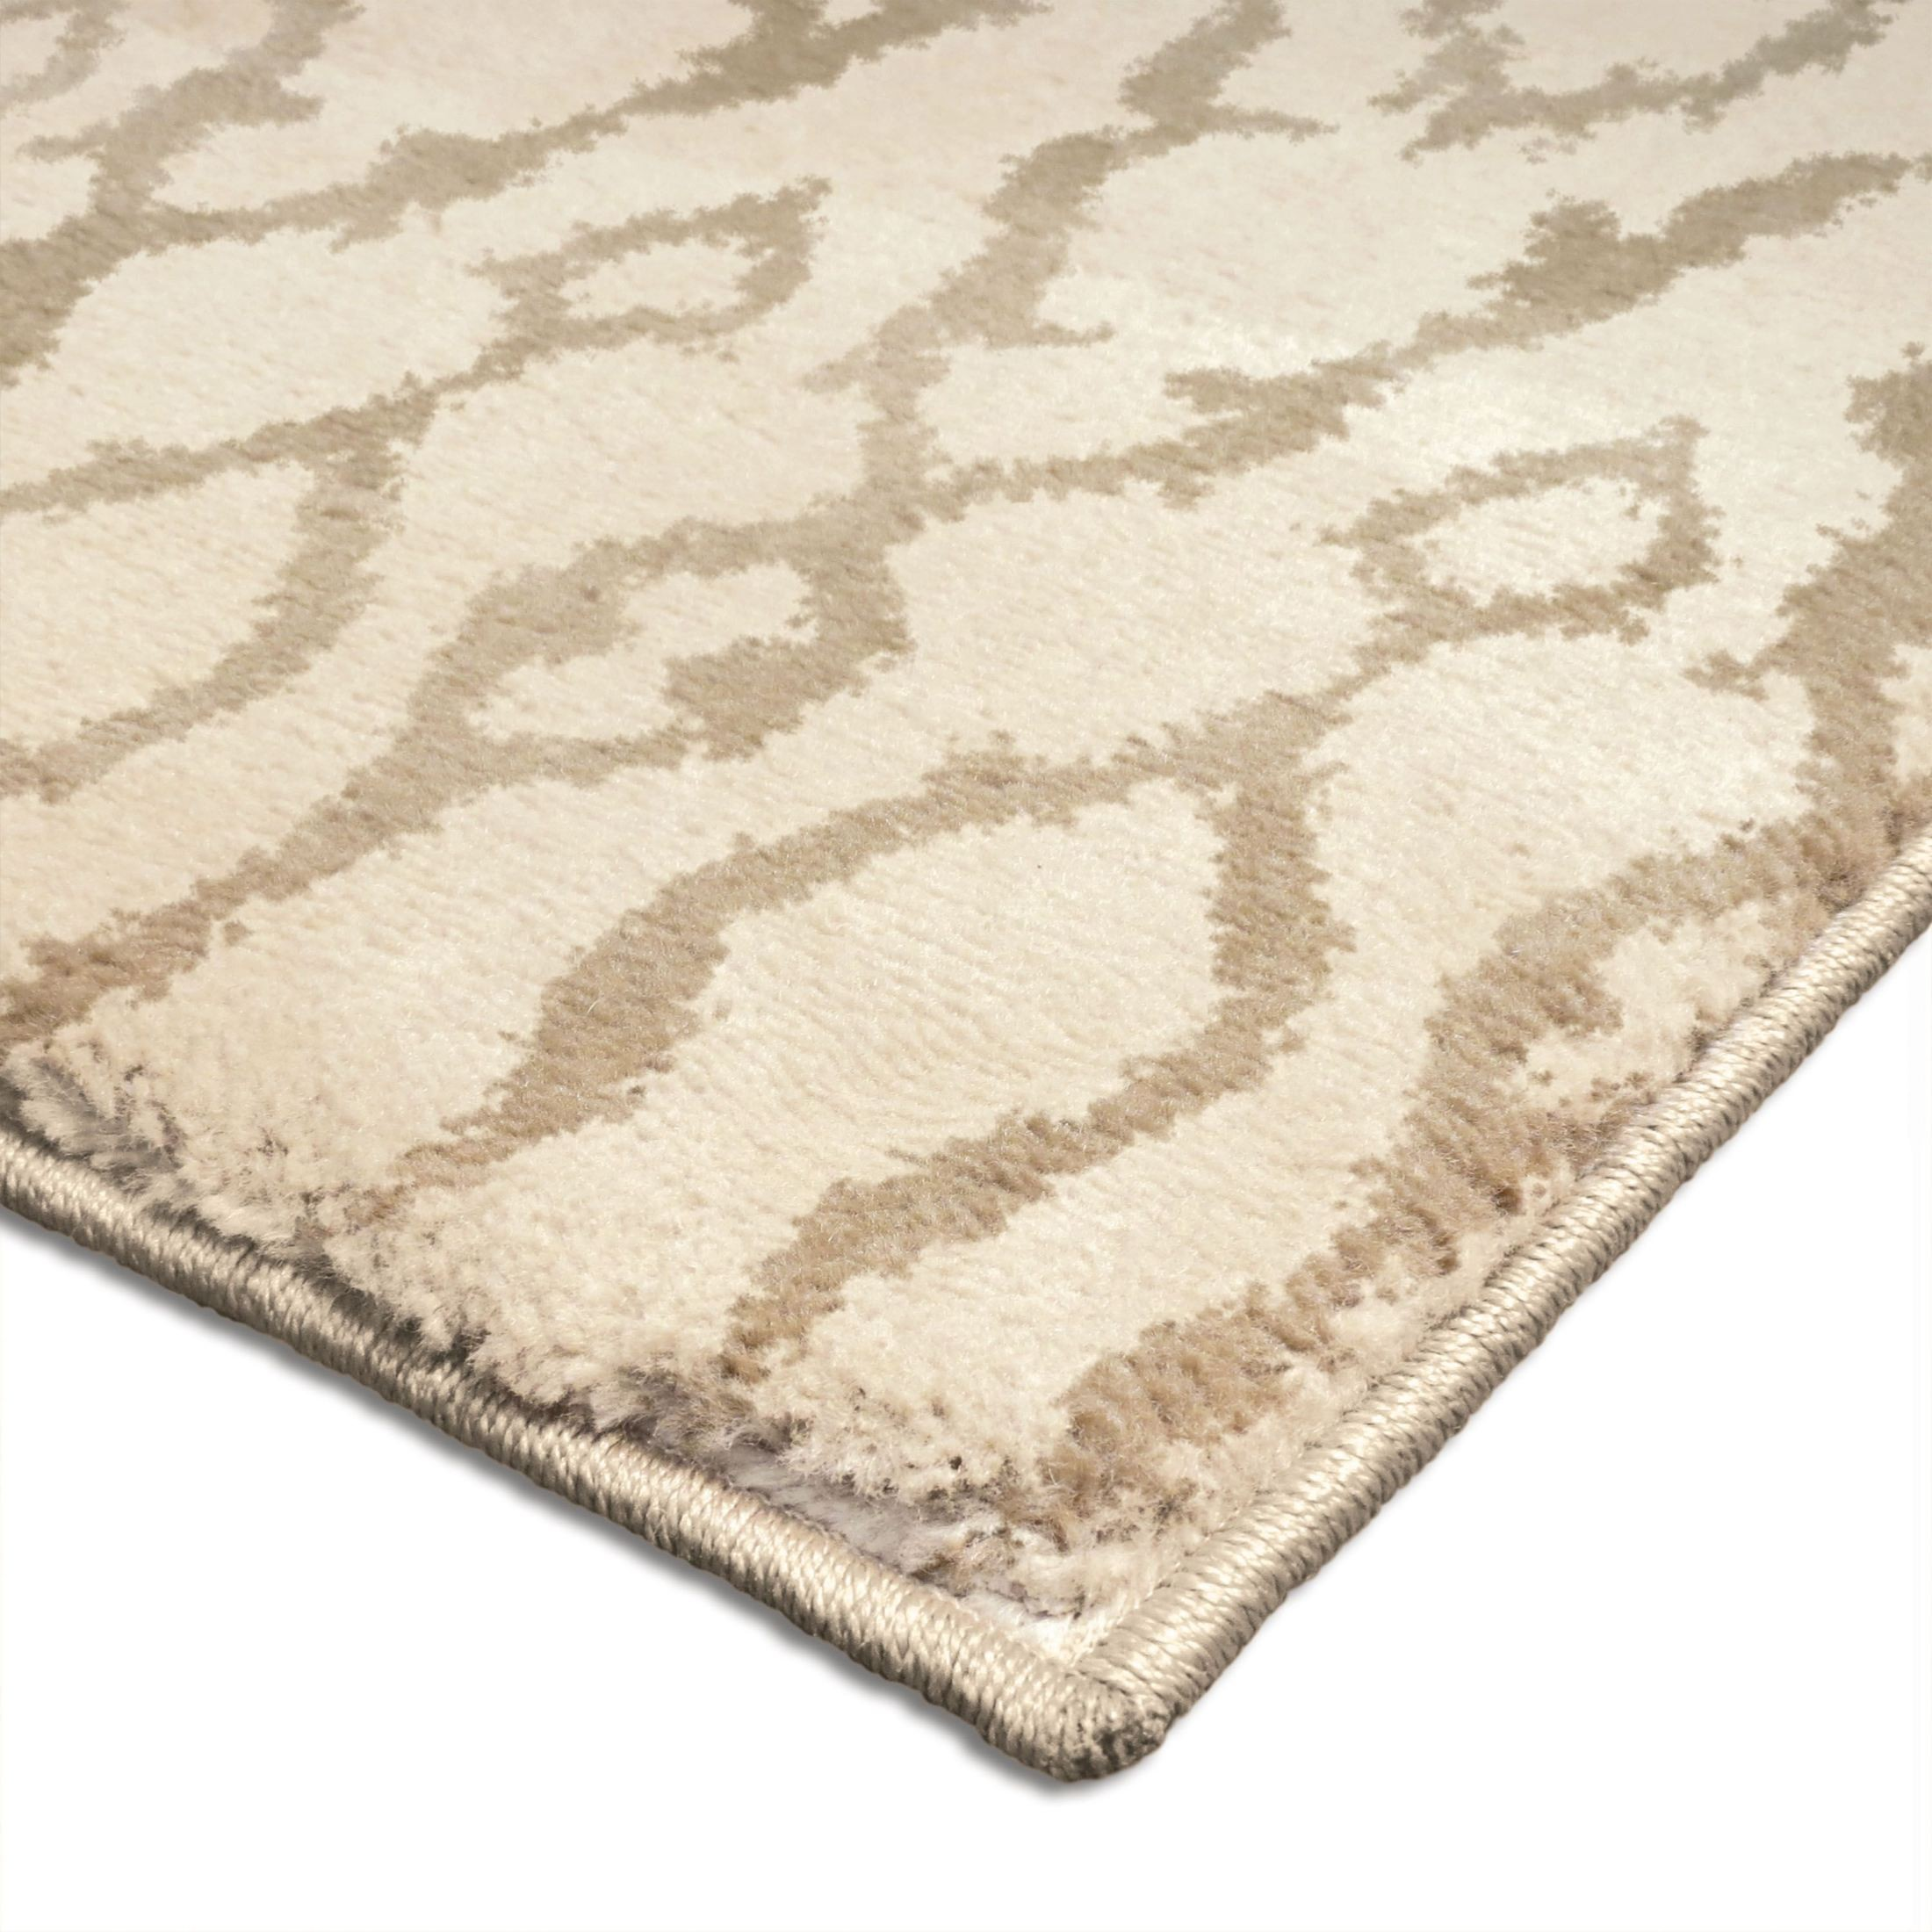 Huge Plush Rug: Orian Rugs Plush Abstract Alagara Ivory Area Large Rug